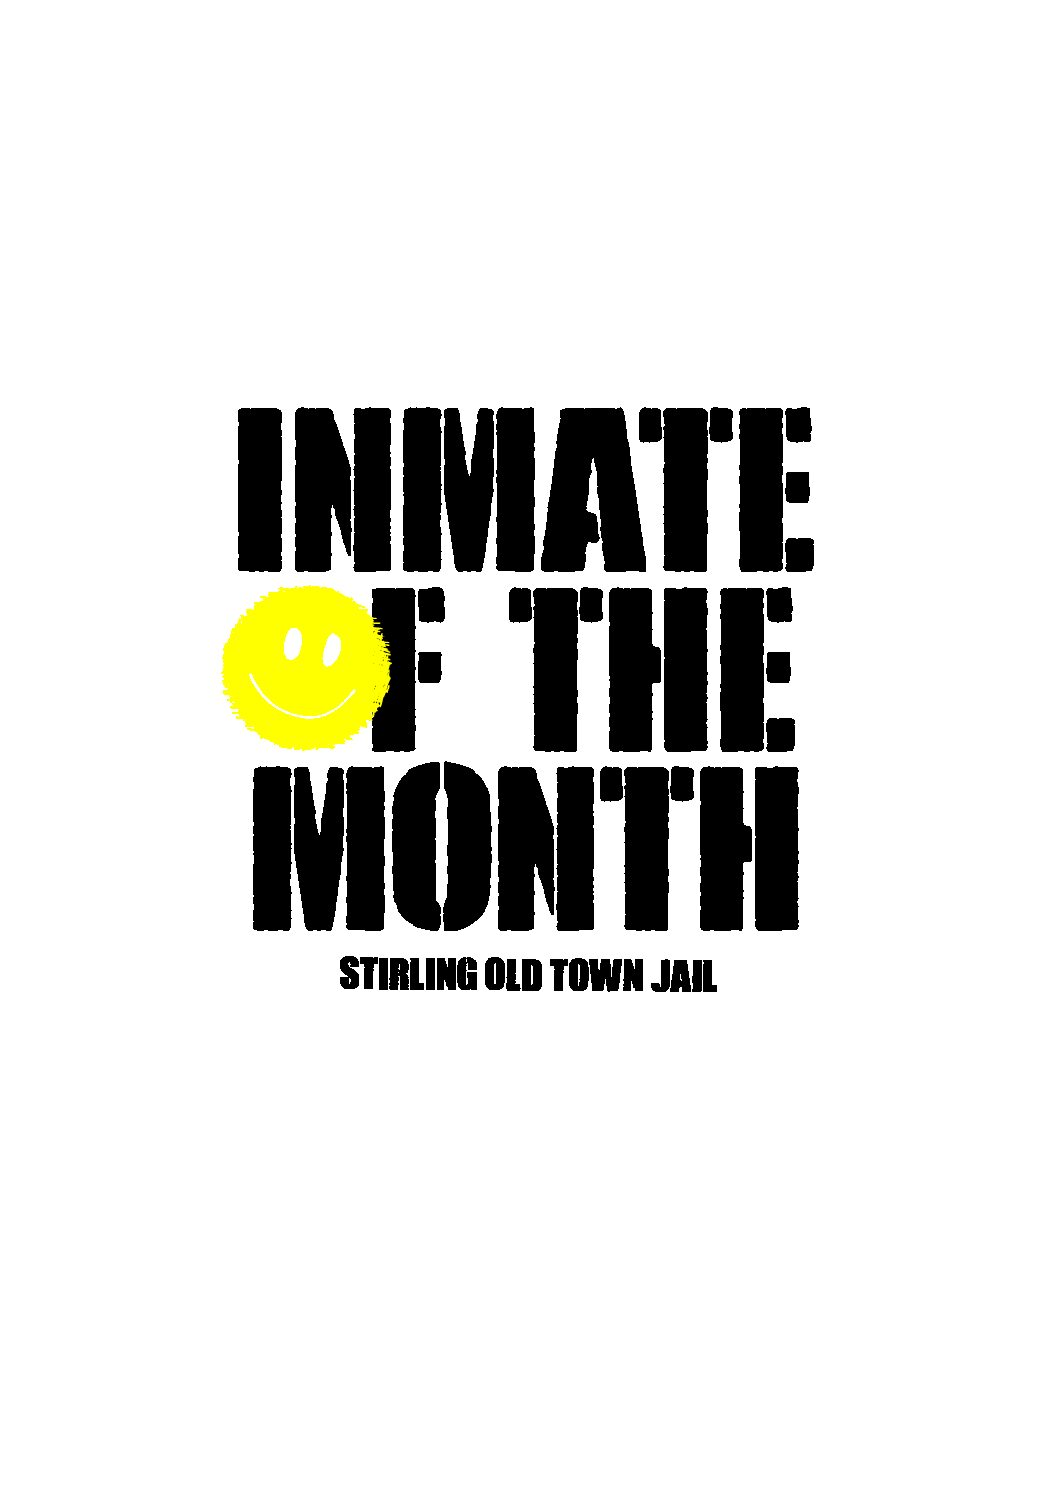 http://oldtownjail.co.uk/wp-content/uploads/2021/03/Inmate-of-The-Month-Tee-pdf.jpg